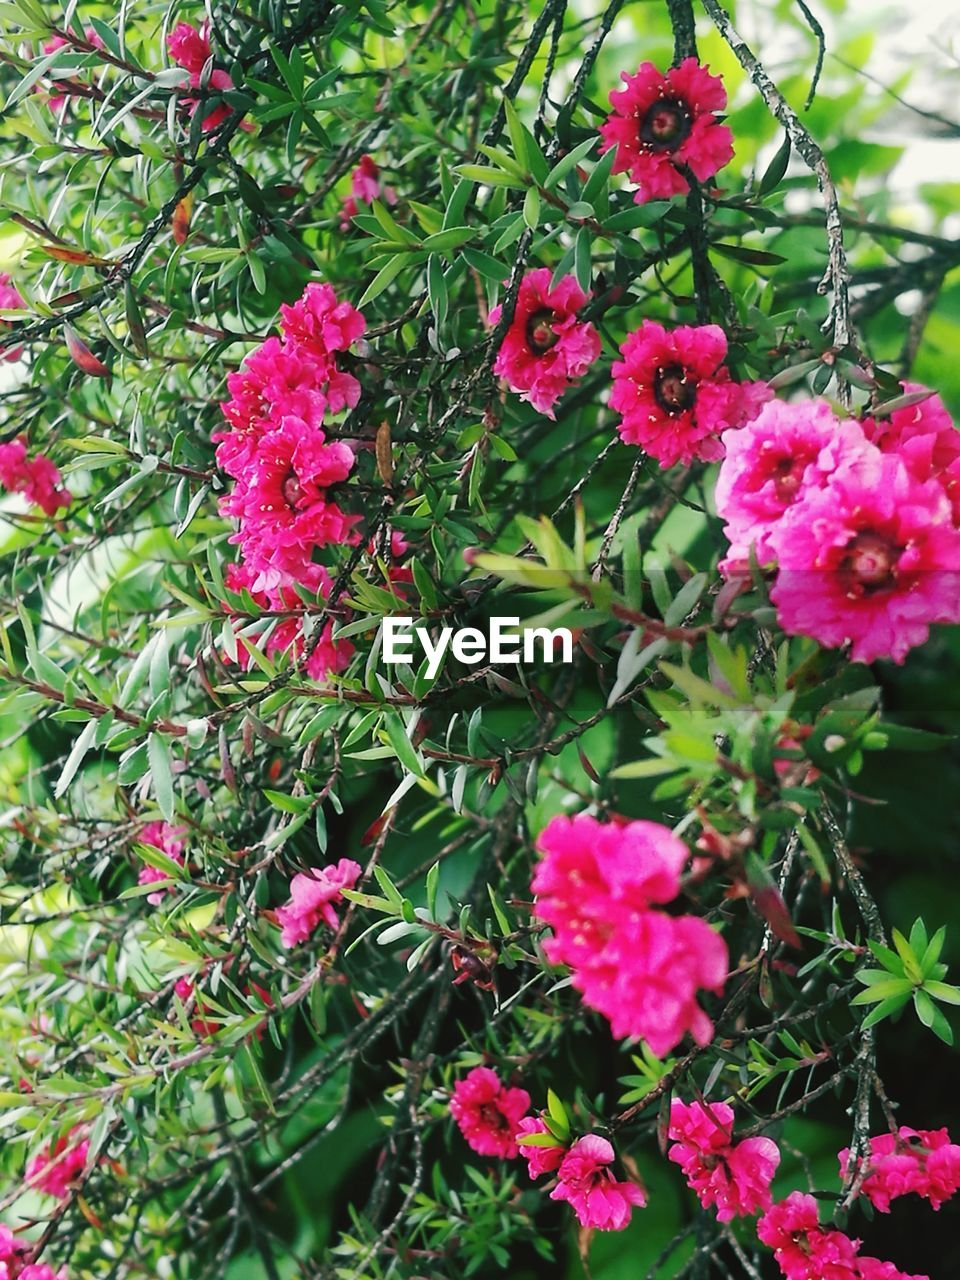 flowering plant, flower, plant, beauty in nature, vulnerability, fragility, freshness, pink color, growth, petal, close-up, nature, flower head, no people, inflorescence, day, park, plant part, park - man made space, leaf, outdoors, purple